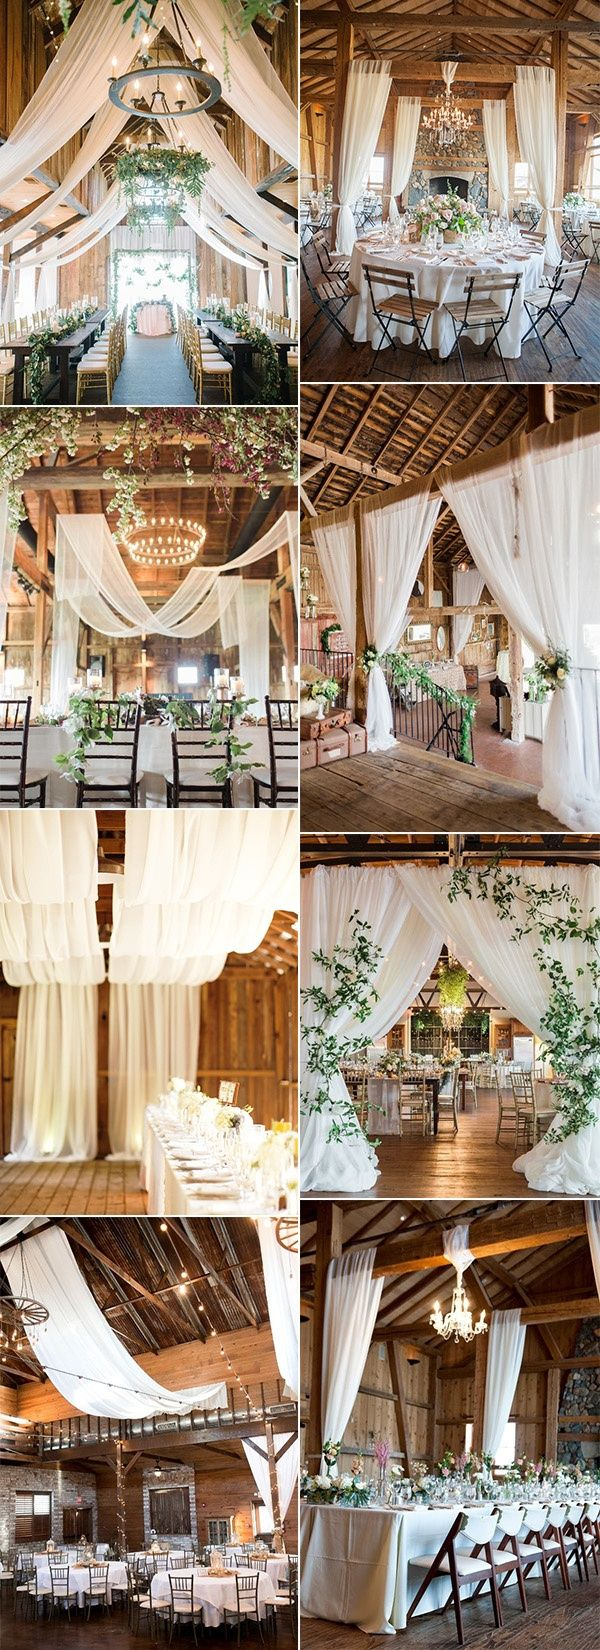 Trending-20 Brilliant Wedding Reception Ideas with Draped Fabric for 2019 – Page 2 of 2